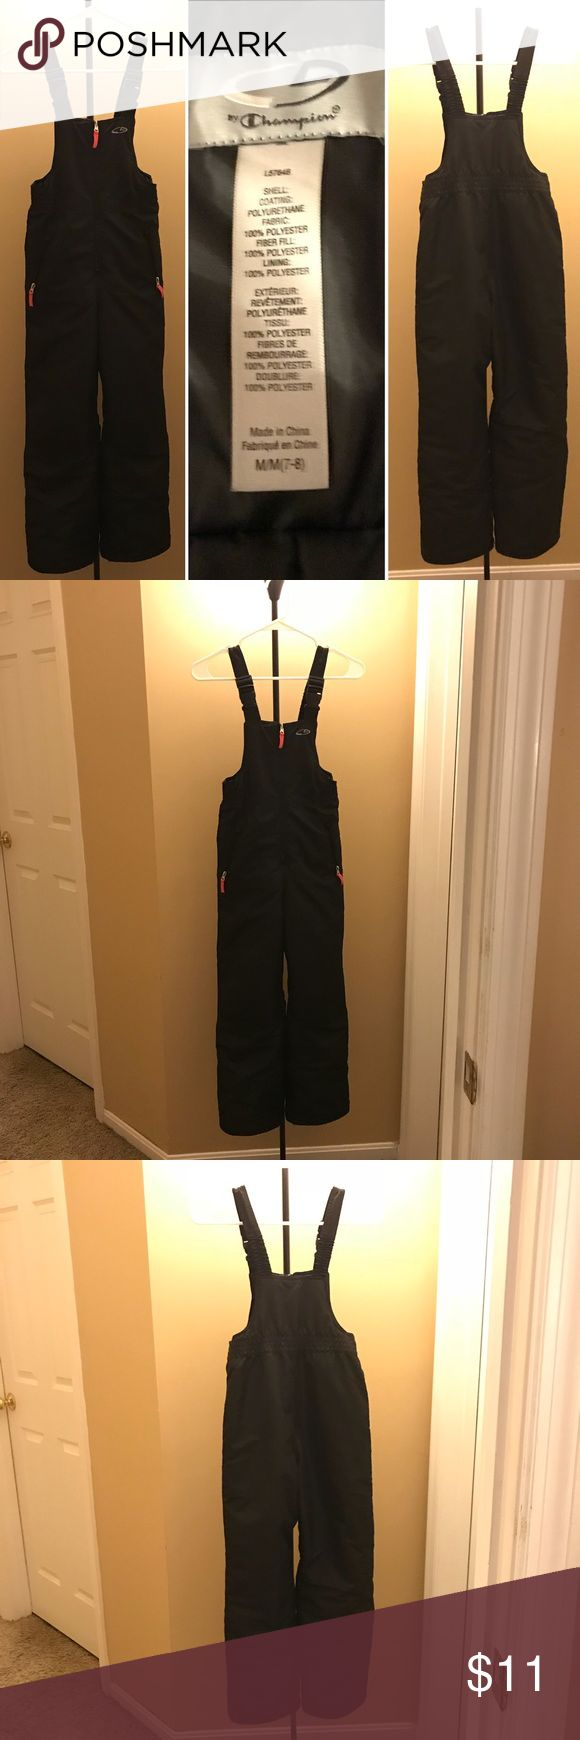 Champion - Overalls NWOT - Kids Ski Overalls by Champion - Size M 7/8. Never wore them. We ended up not getting snow that year.   Just in time for this year Winter! ⛷ Champion Jackets & Coats